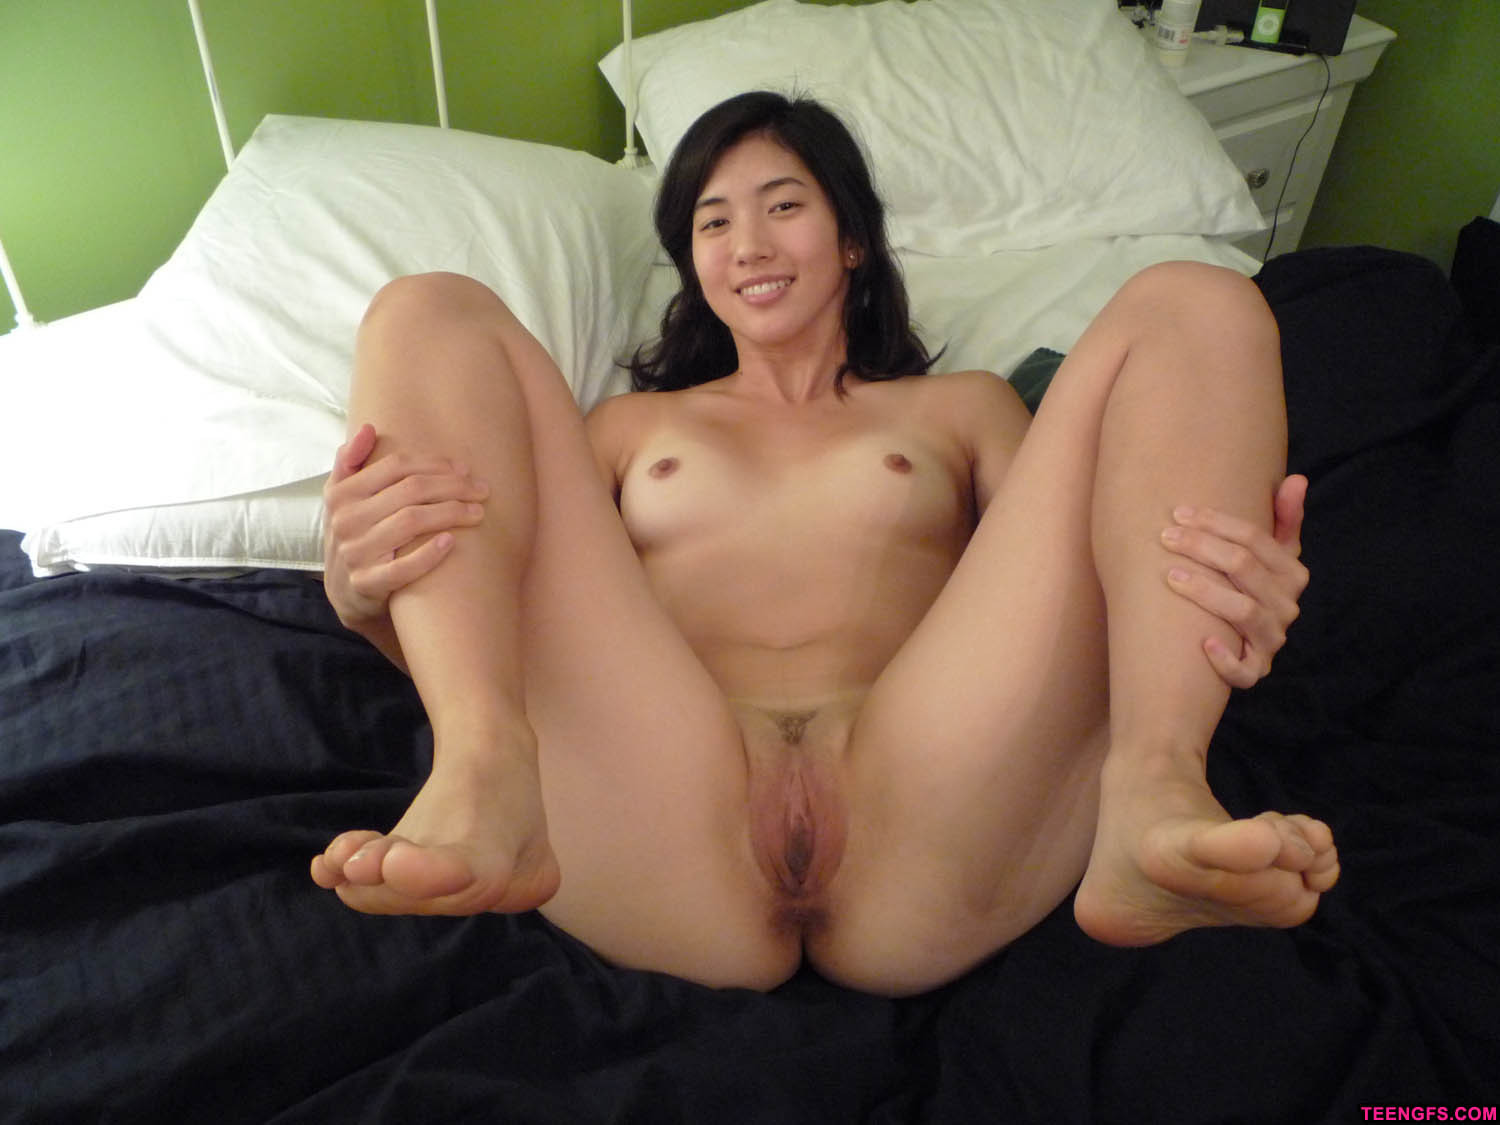 My black exgirlfriend sucks my white cock and takes my load 4